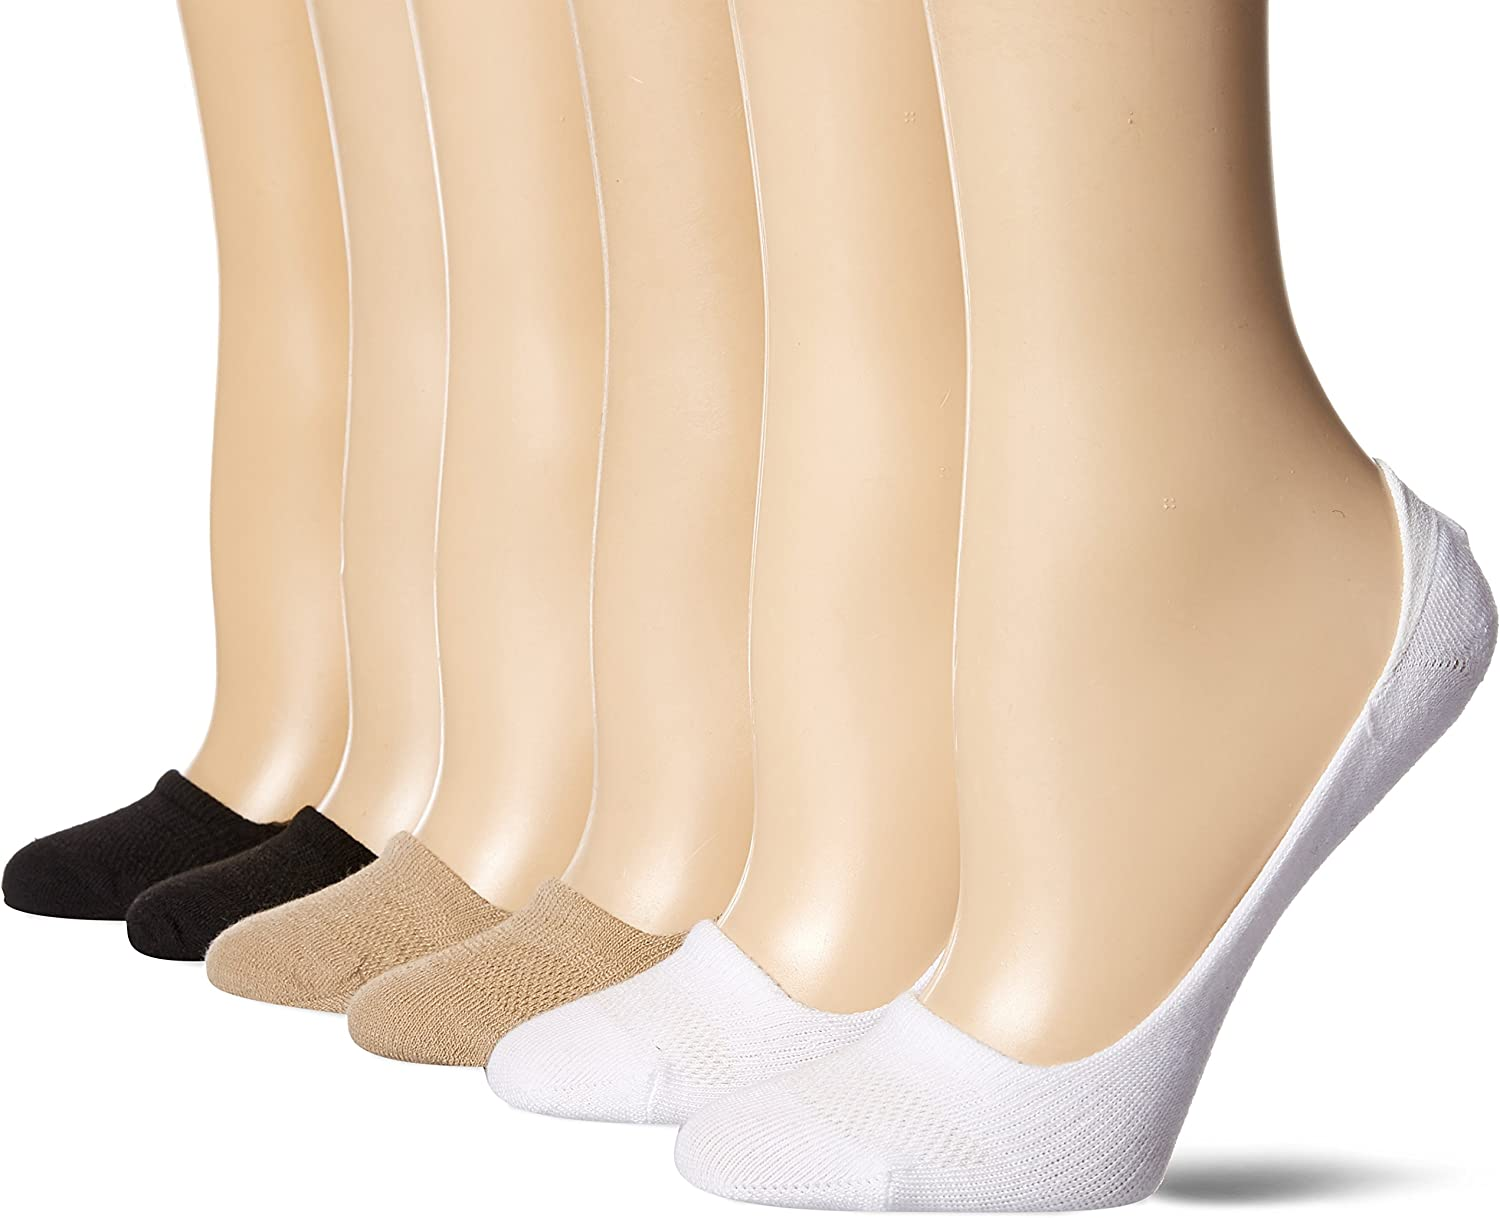 Hanes womens 6-pack Invisible Comfort Ballerina Liner